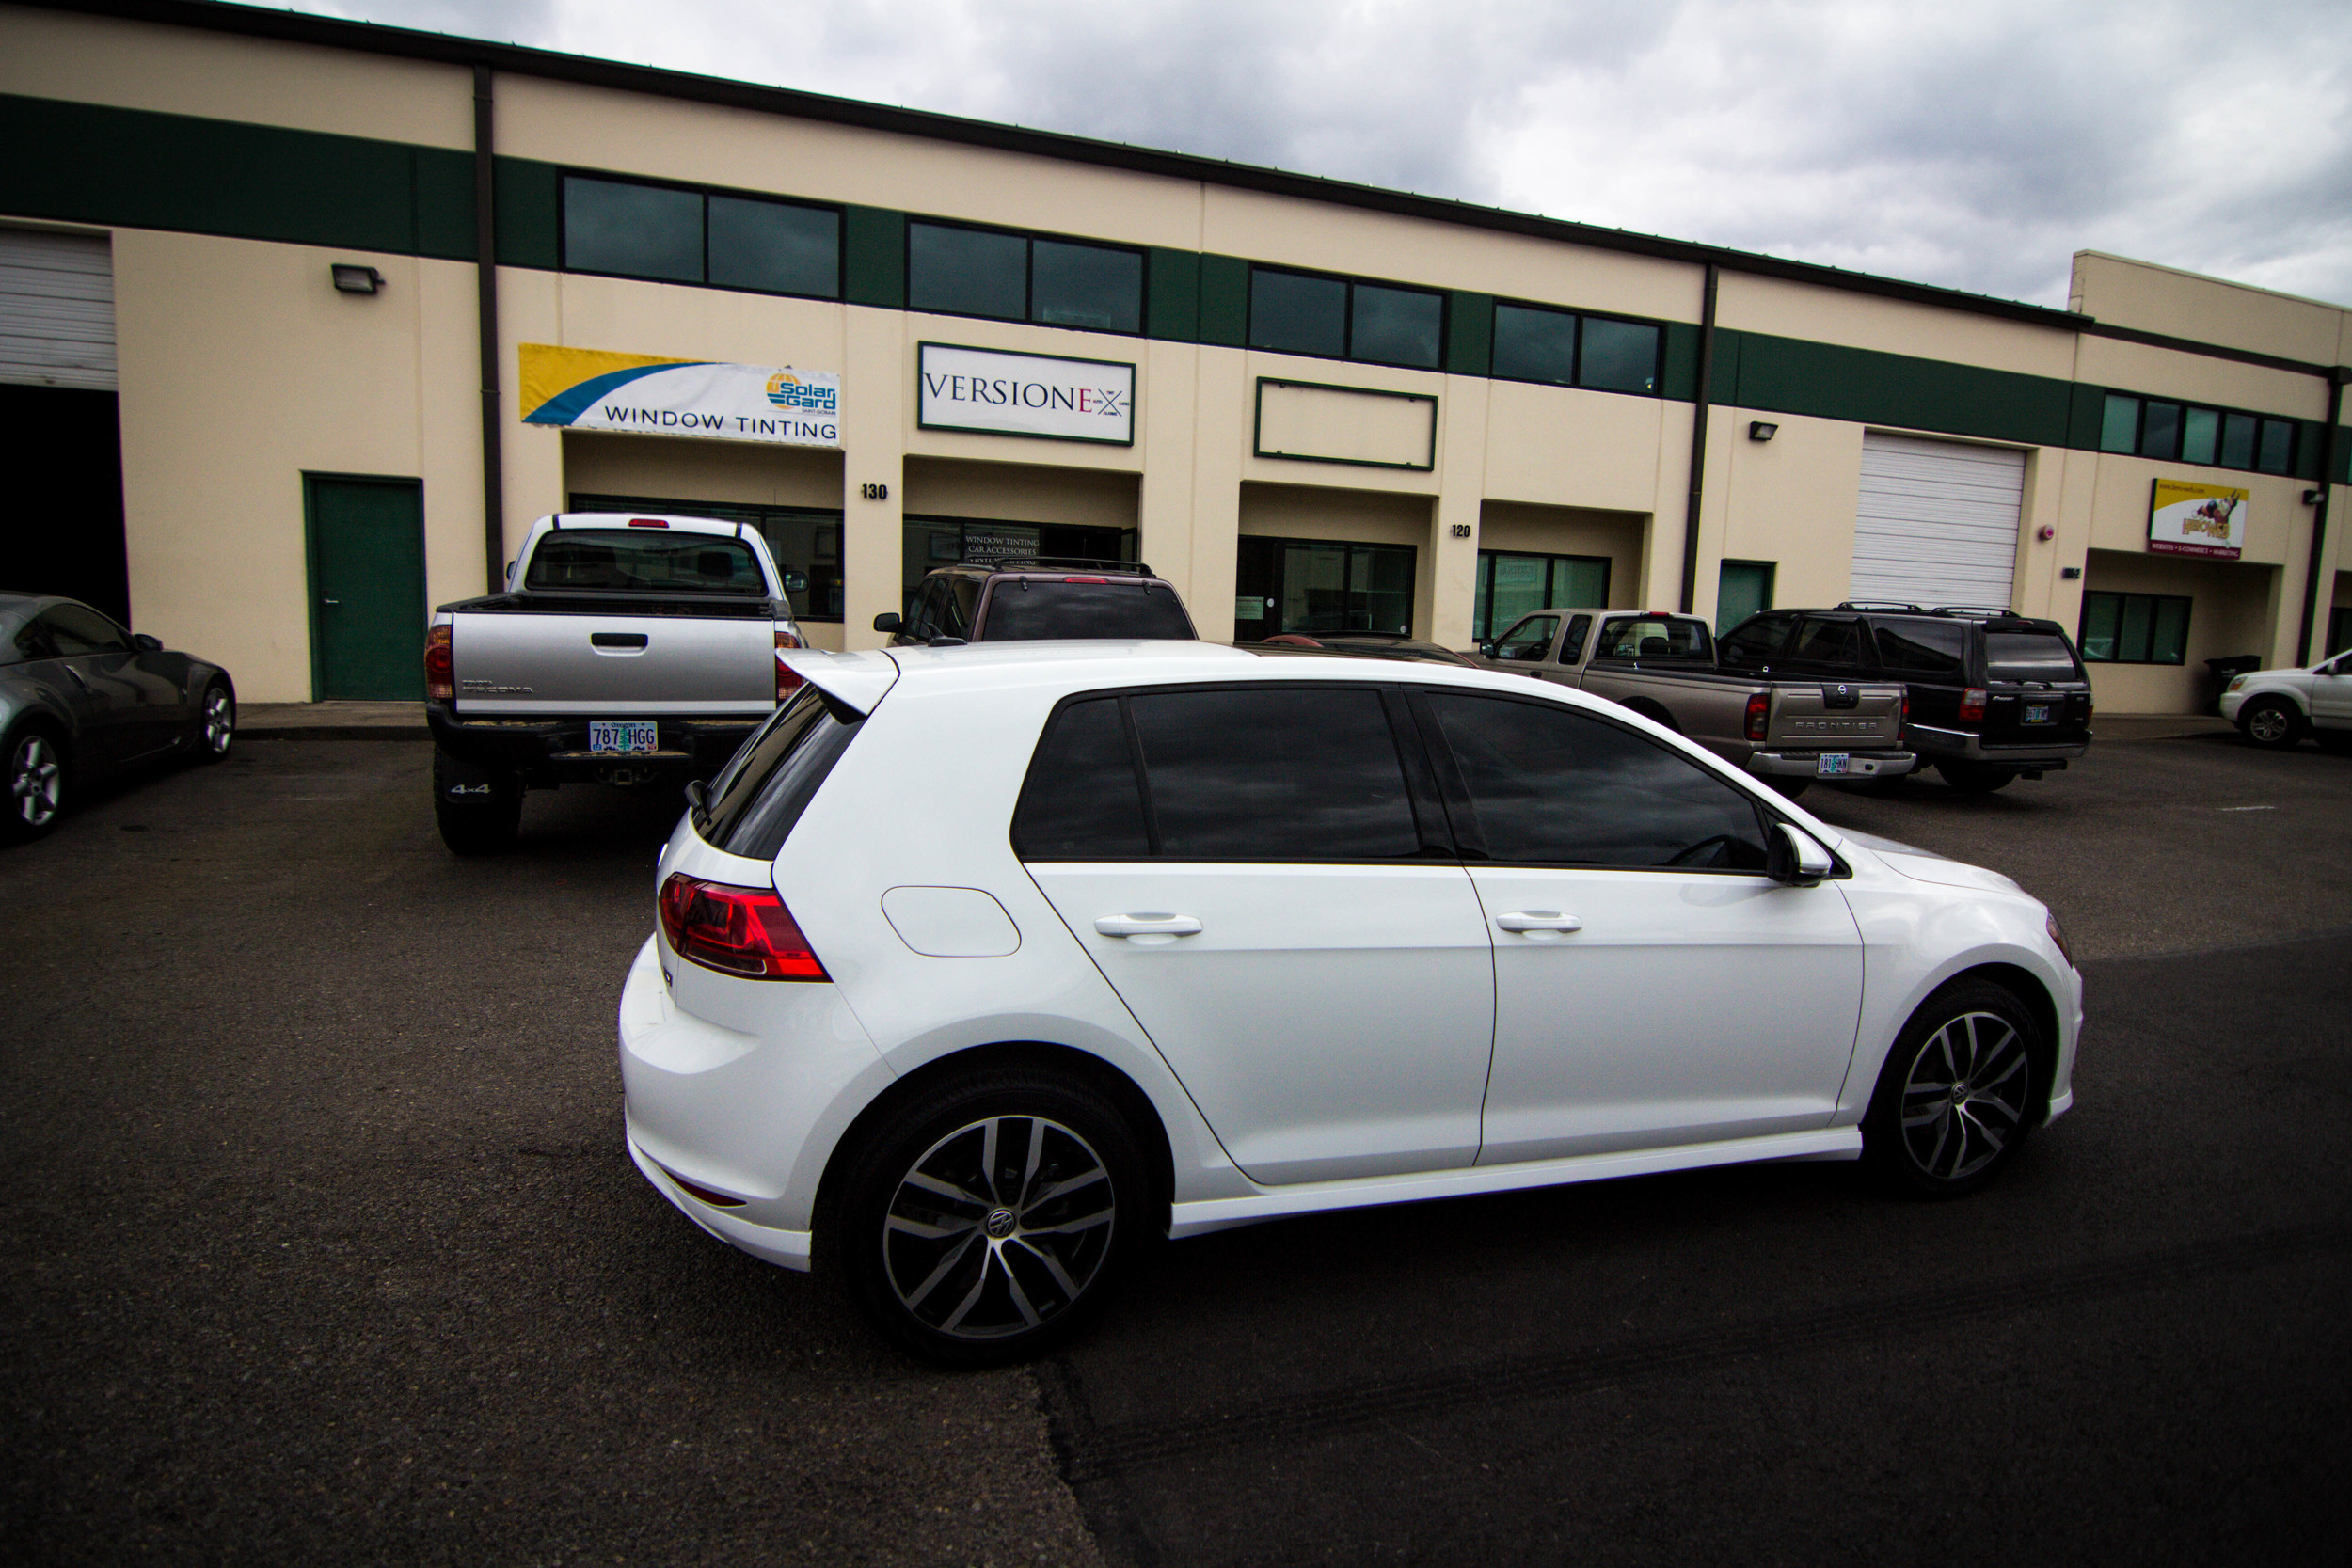 2015 Volkswagen came straight from the dealership!  Window Tint : 15% all around.